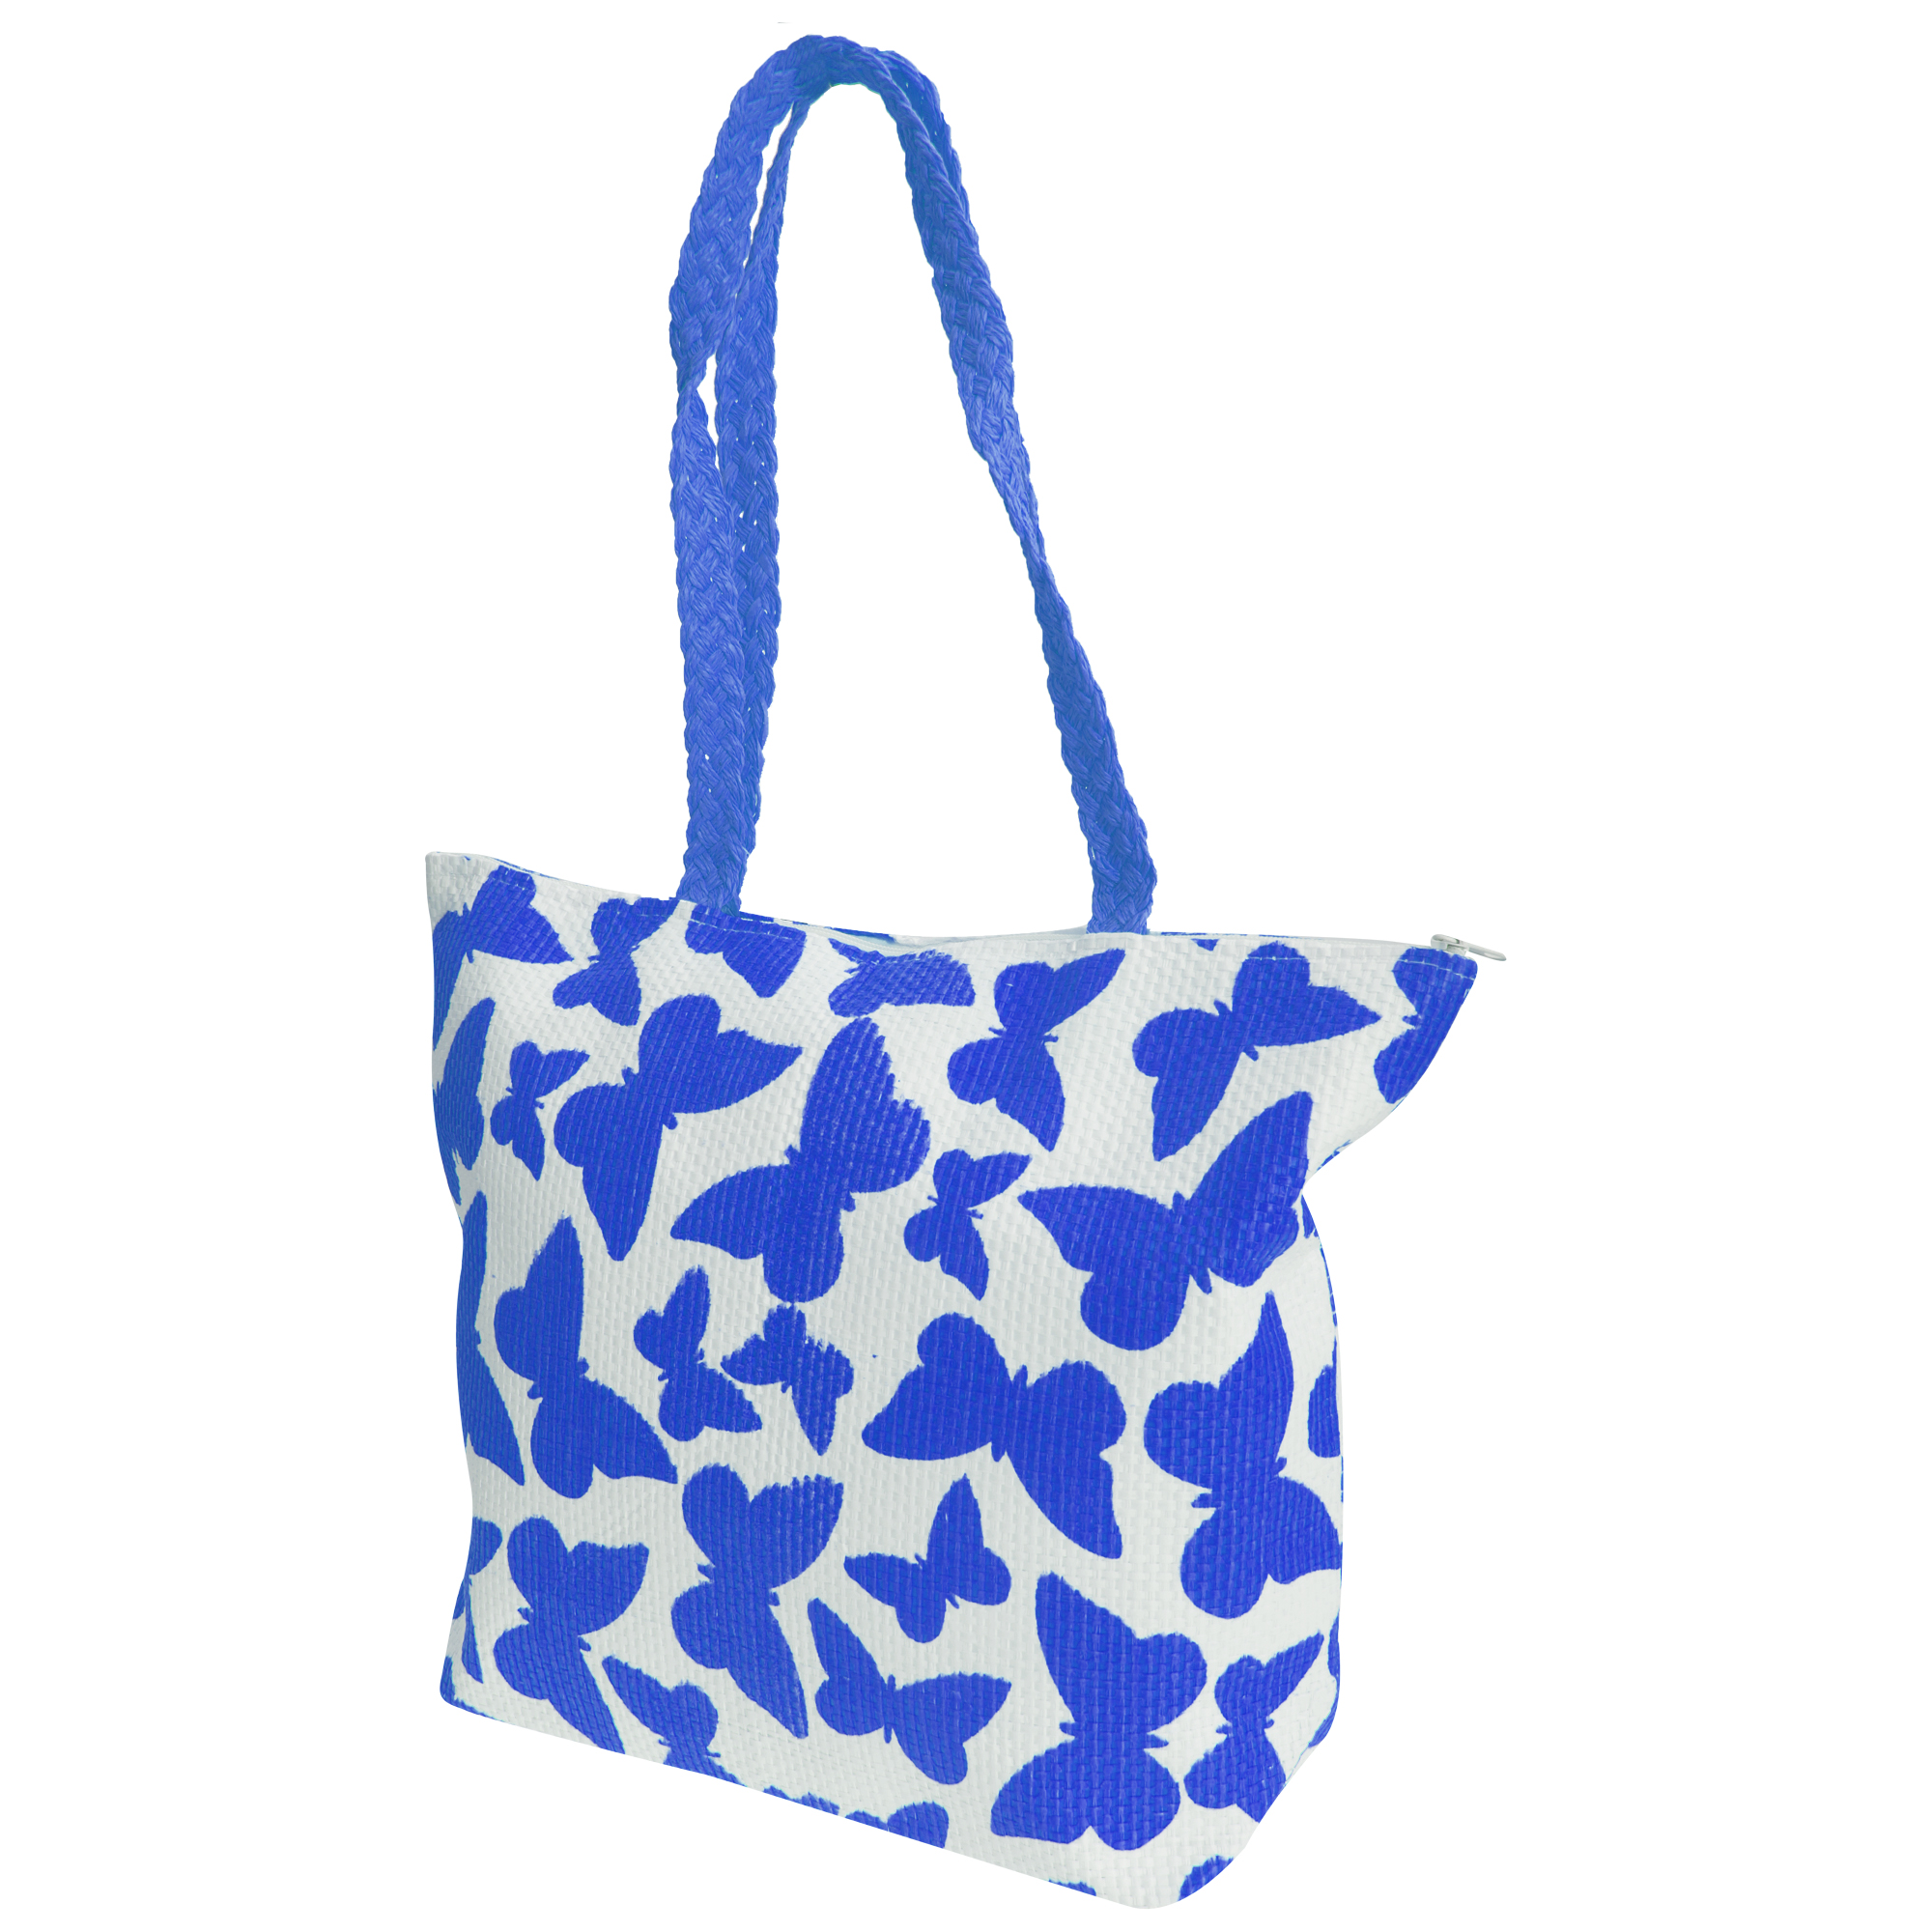 FLOSO Womens/Ladies Straw Woven Butterfly Print Top Handle Handbag (One Size) (White/Blue)